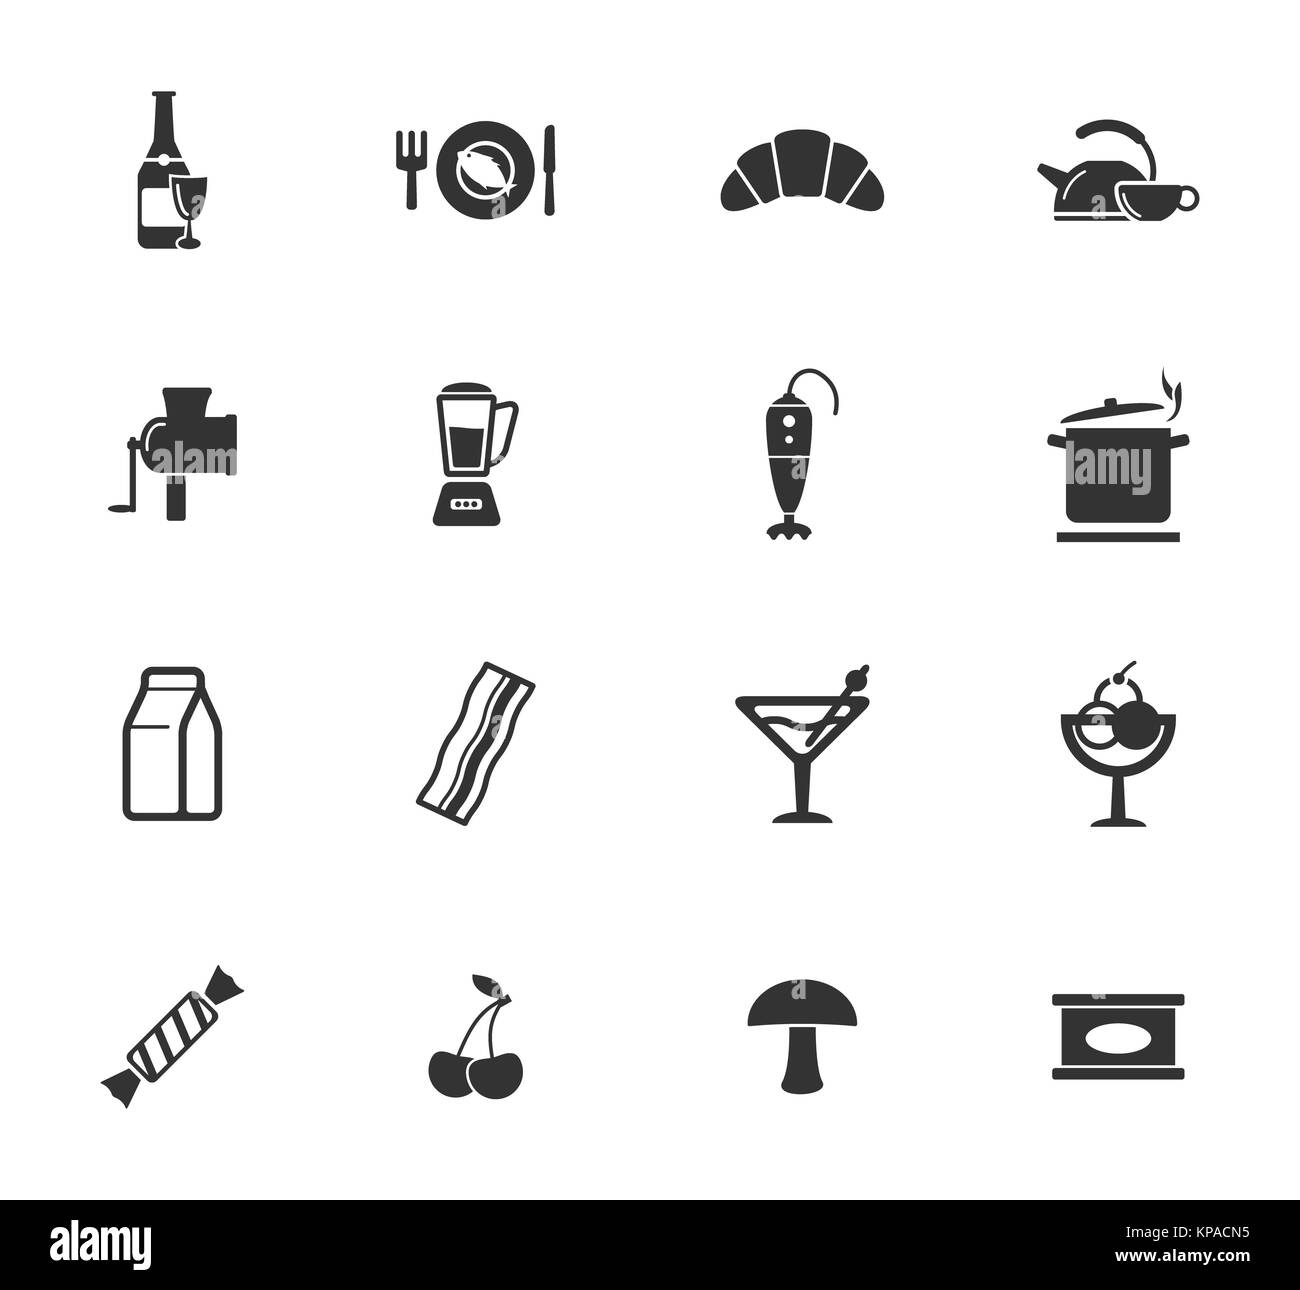 Food and kitchen simply icons - Stock Image